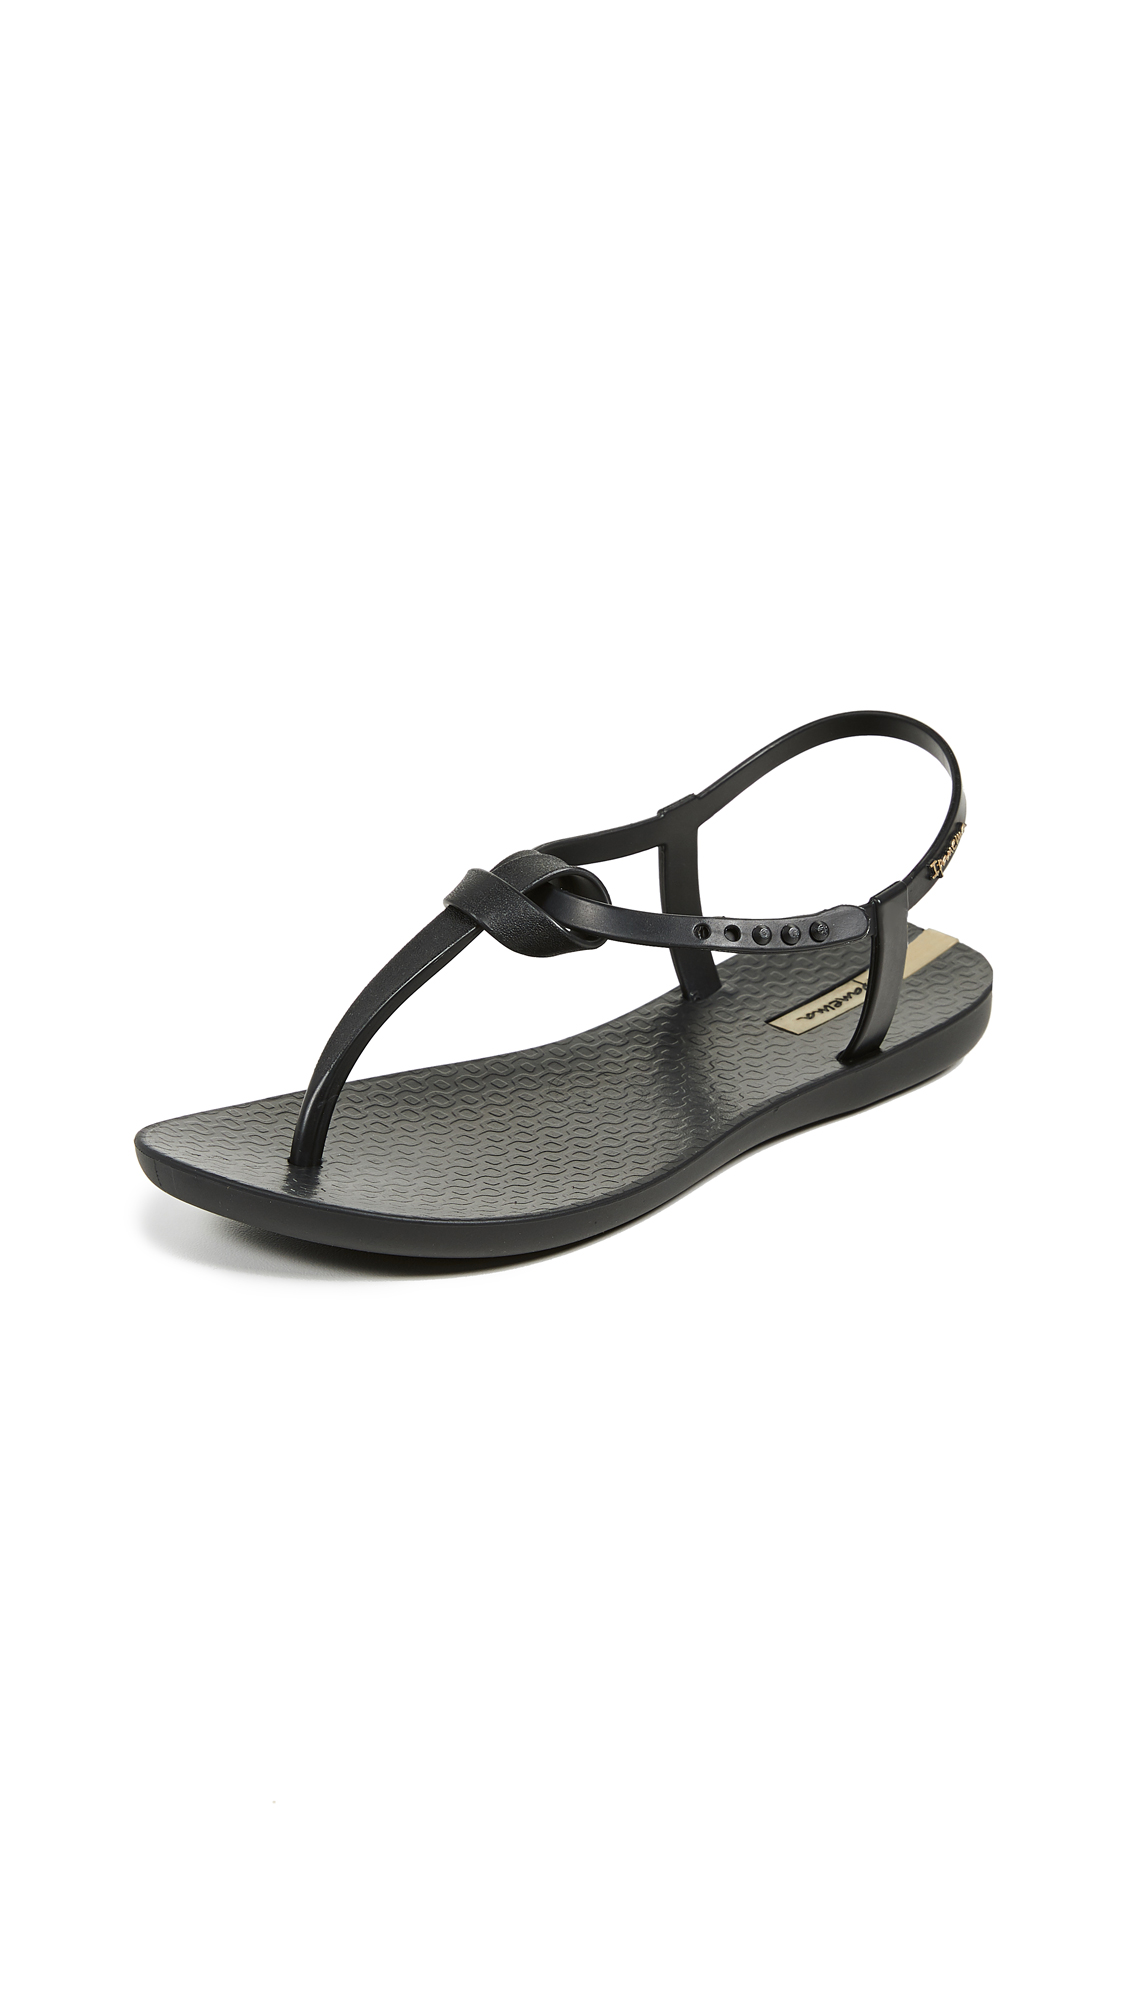 Ipanema Ellie Knot T-Strap Sandals - Black/Black